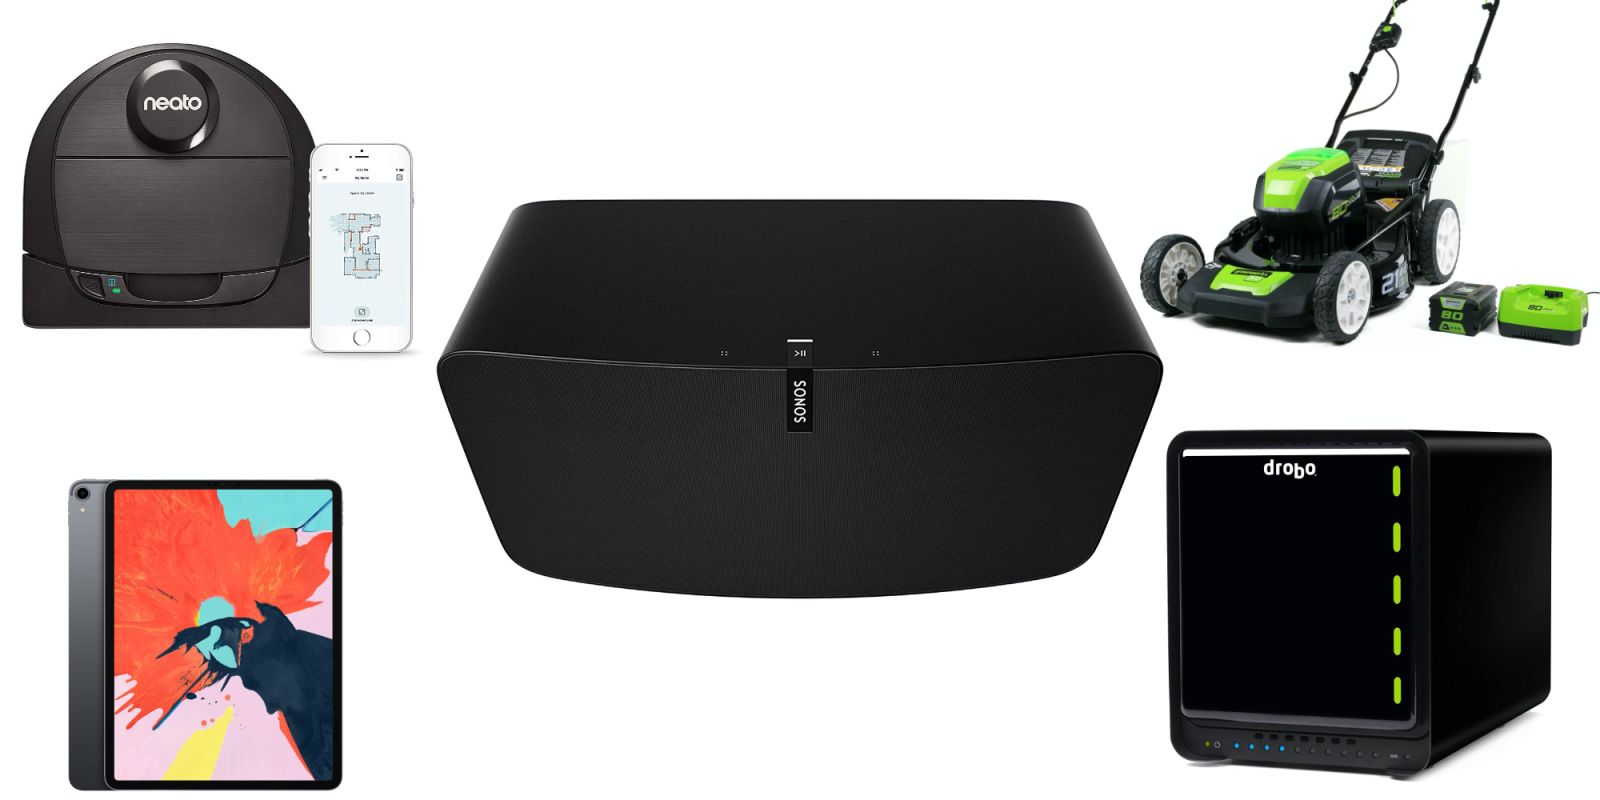 Amazon Warehouse is 20% off: Sonos Play:5 w/ AirPlay 2 $362 (Orig. $499), more